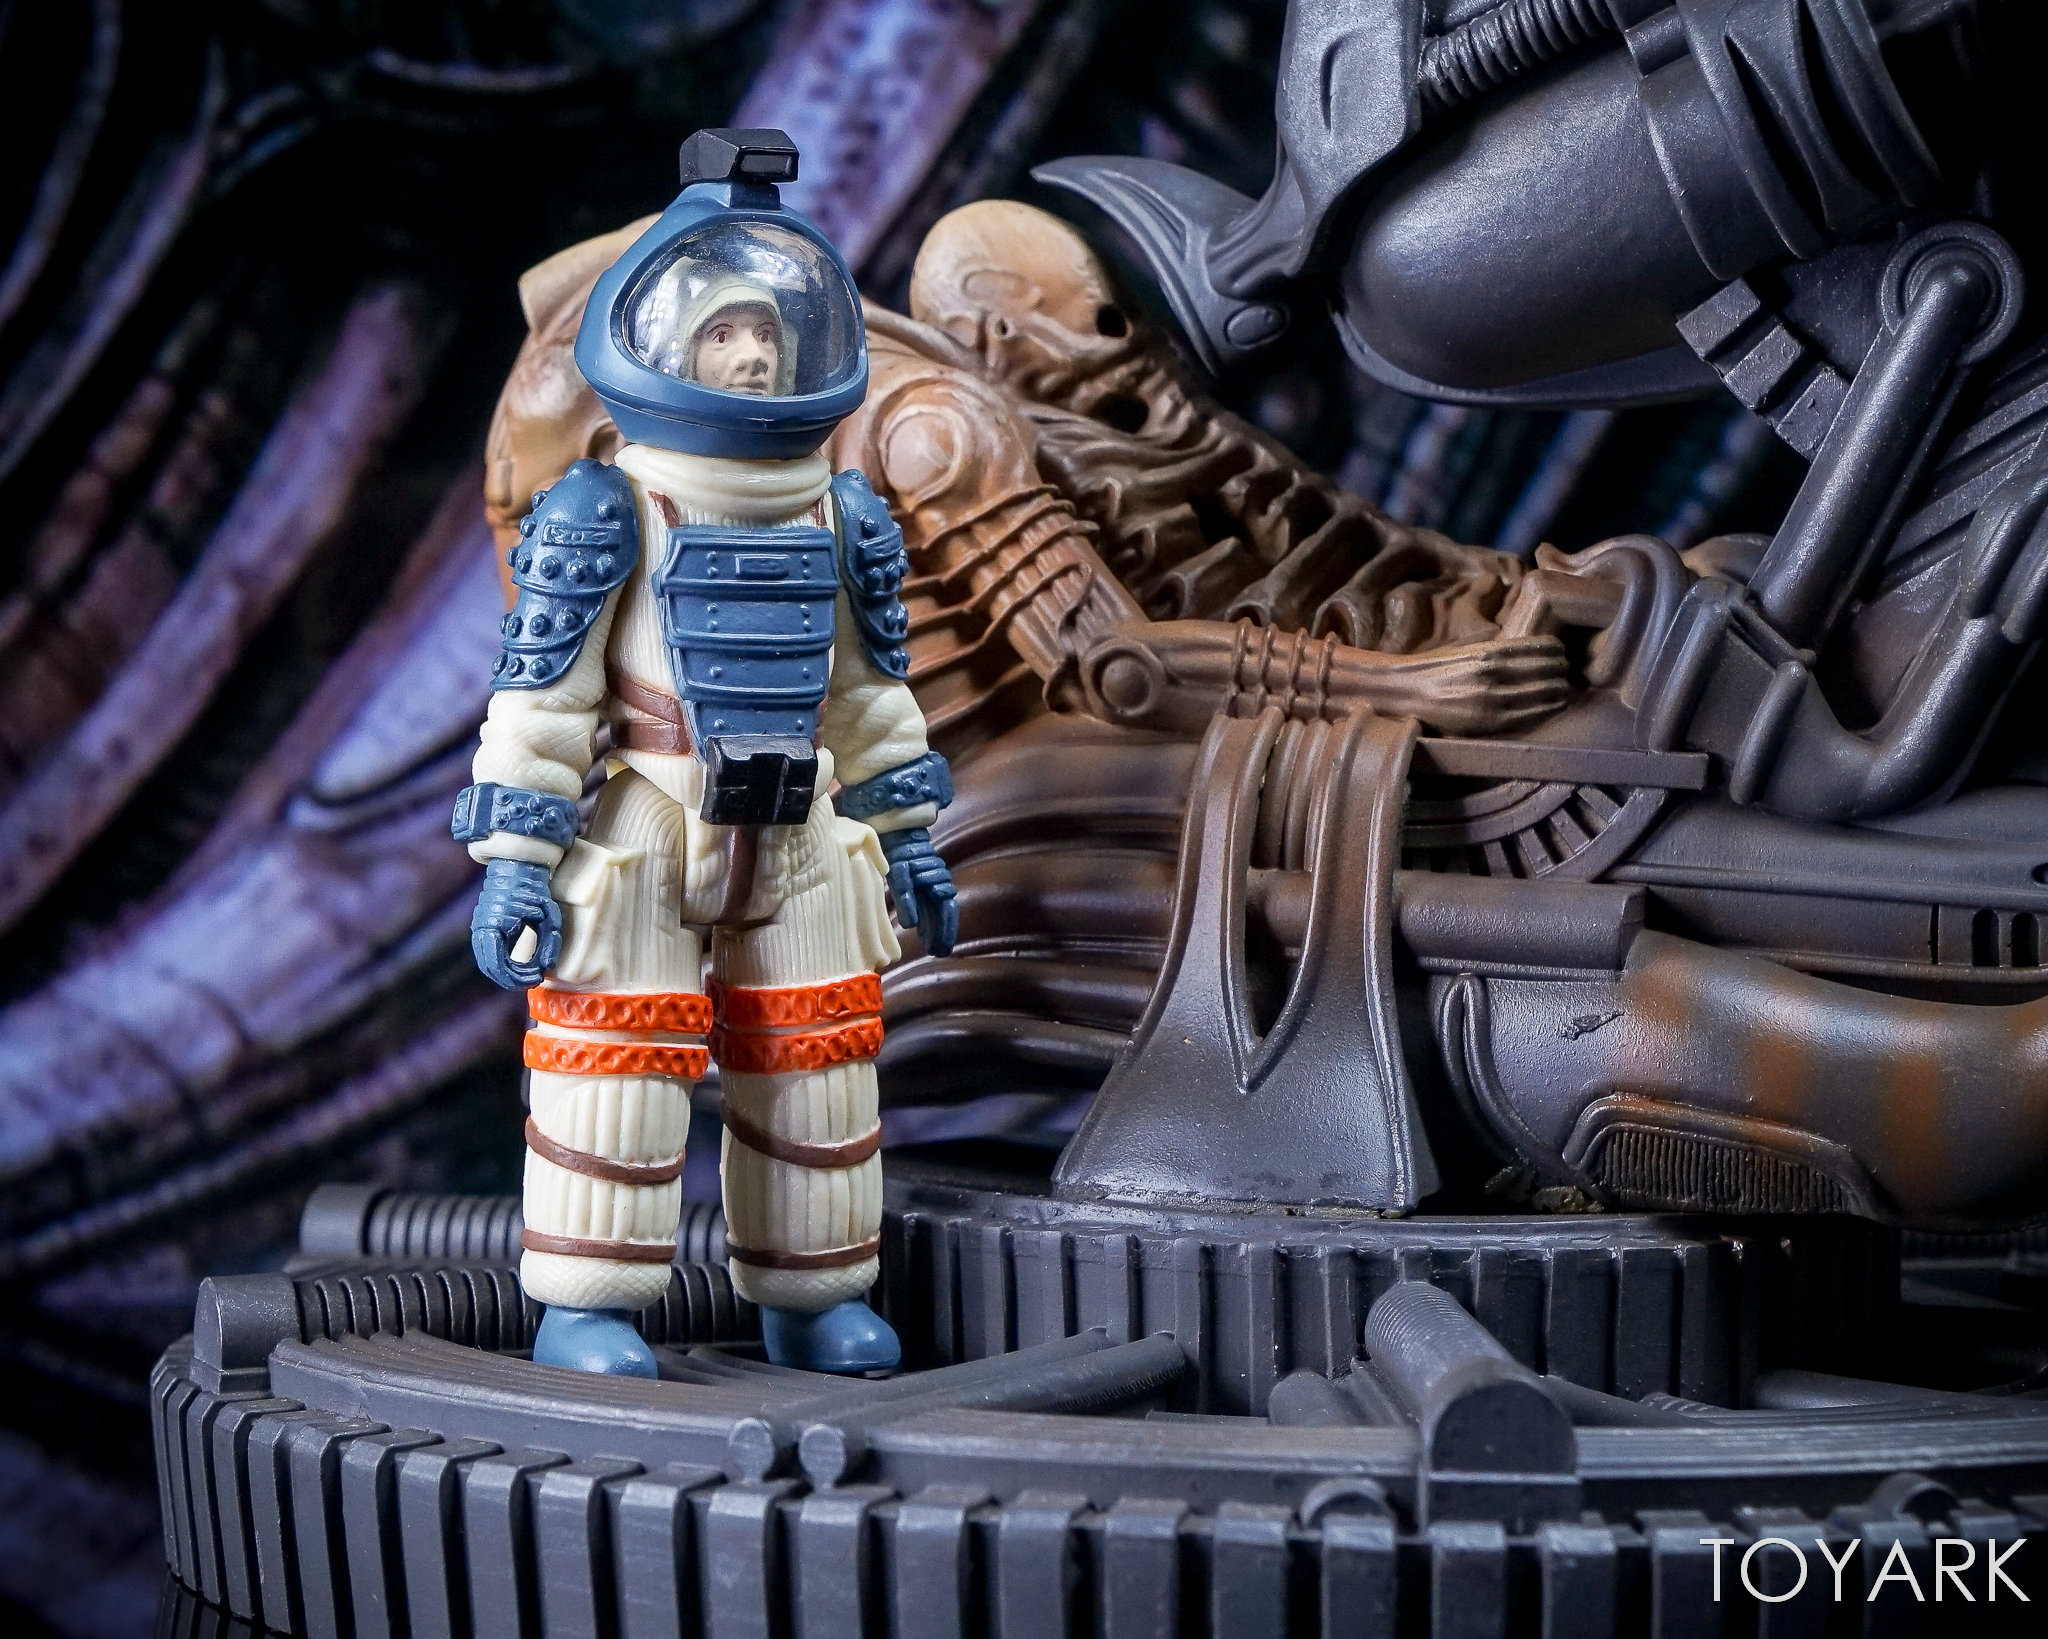 http://news.toyark.com/wp-content/uploads/sites/4/2017/11/Eaglemoss-Alien-Space-Jockey-029.jpg